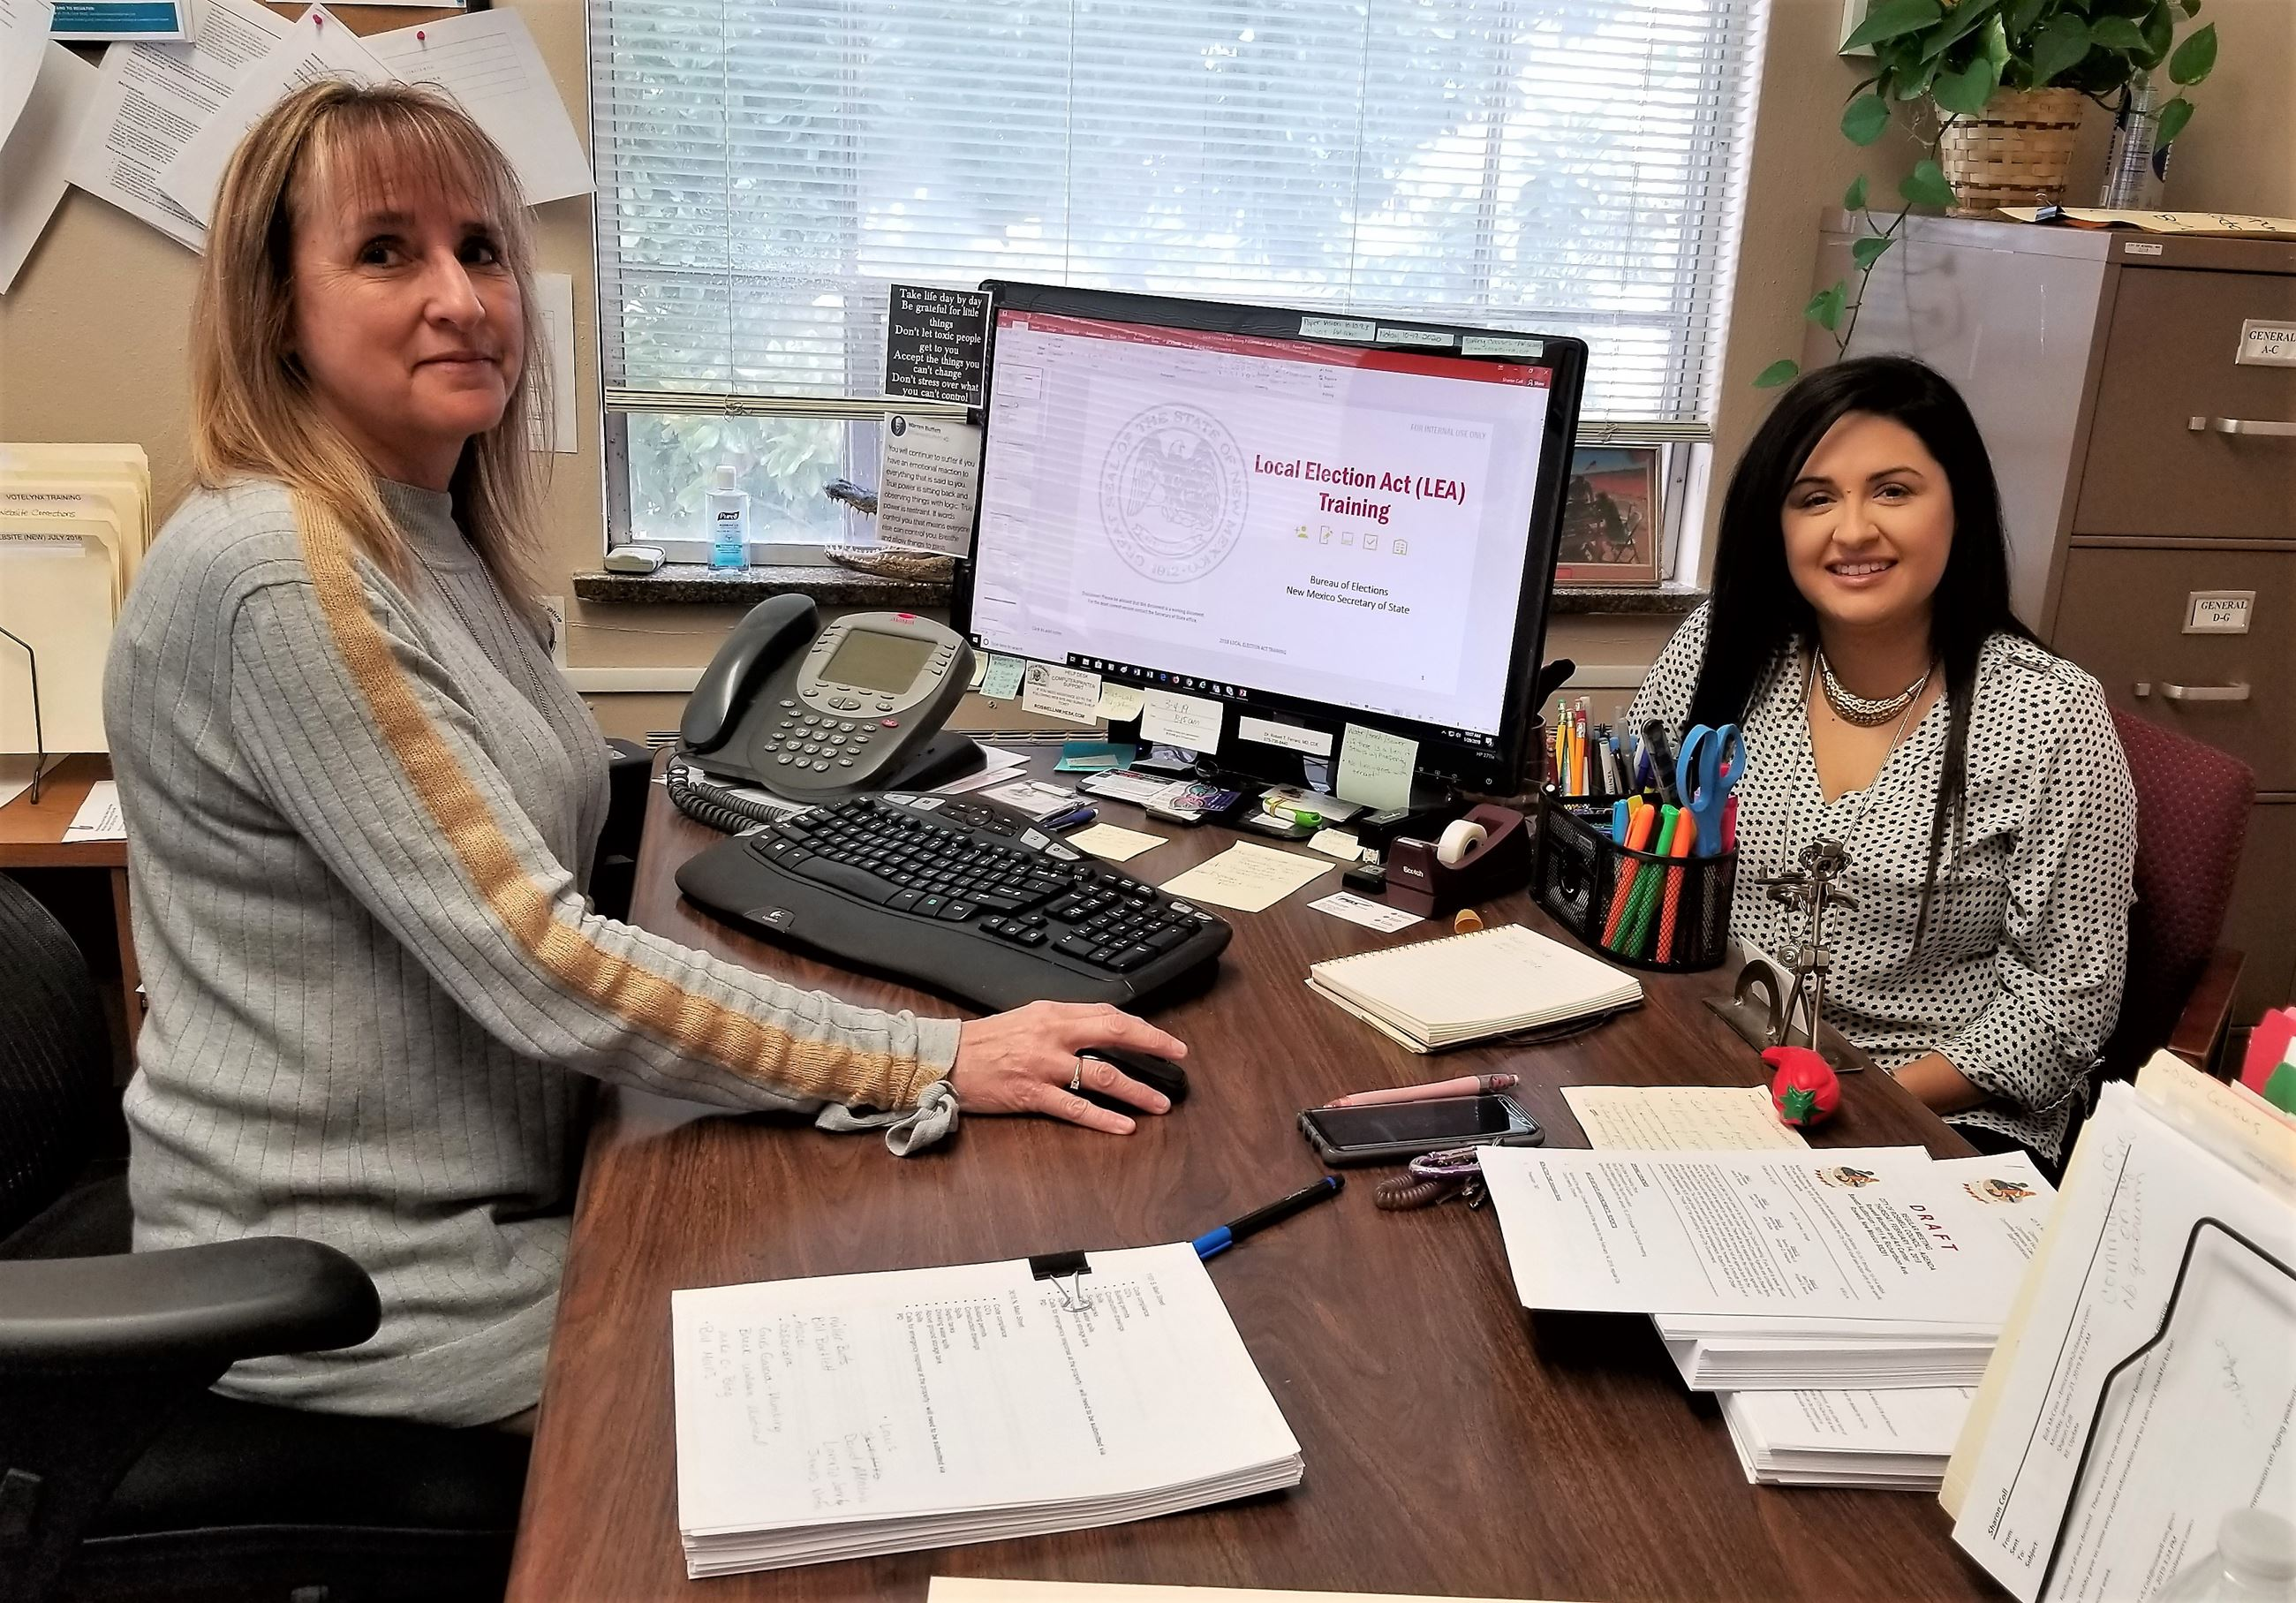 City Clerk Sharon Coll and Deputy City Clerk Stephanie Garay (Jan 2019)